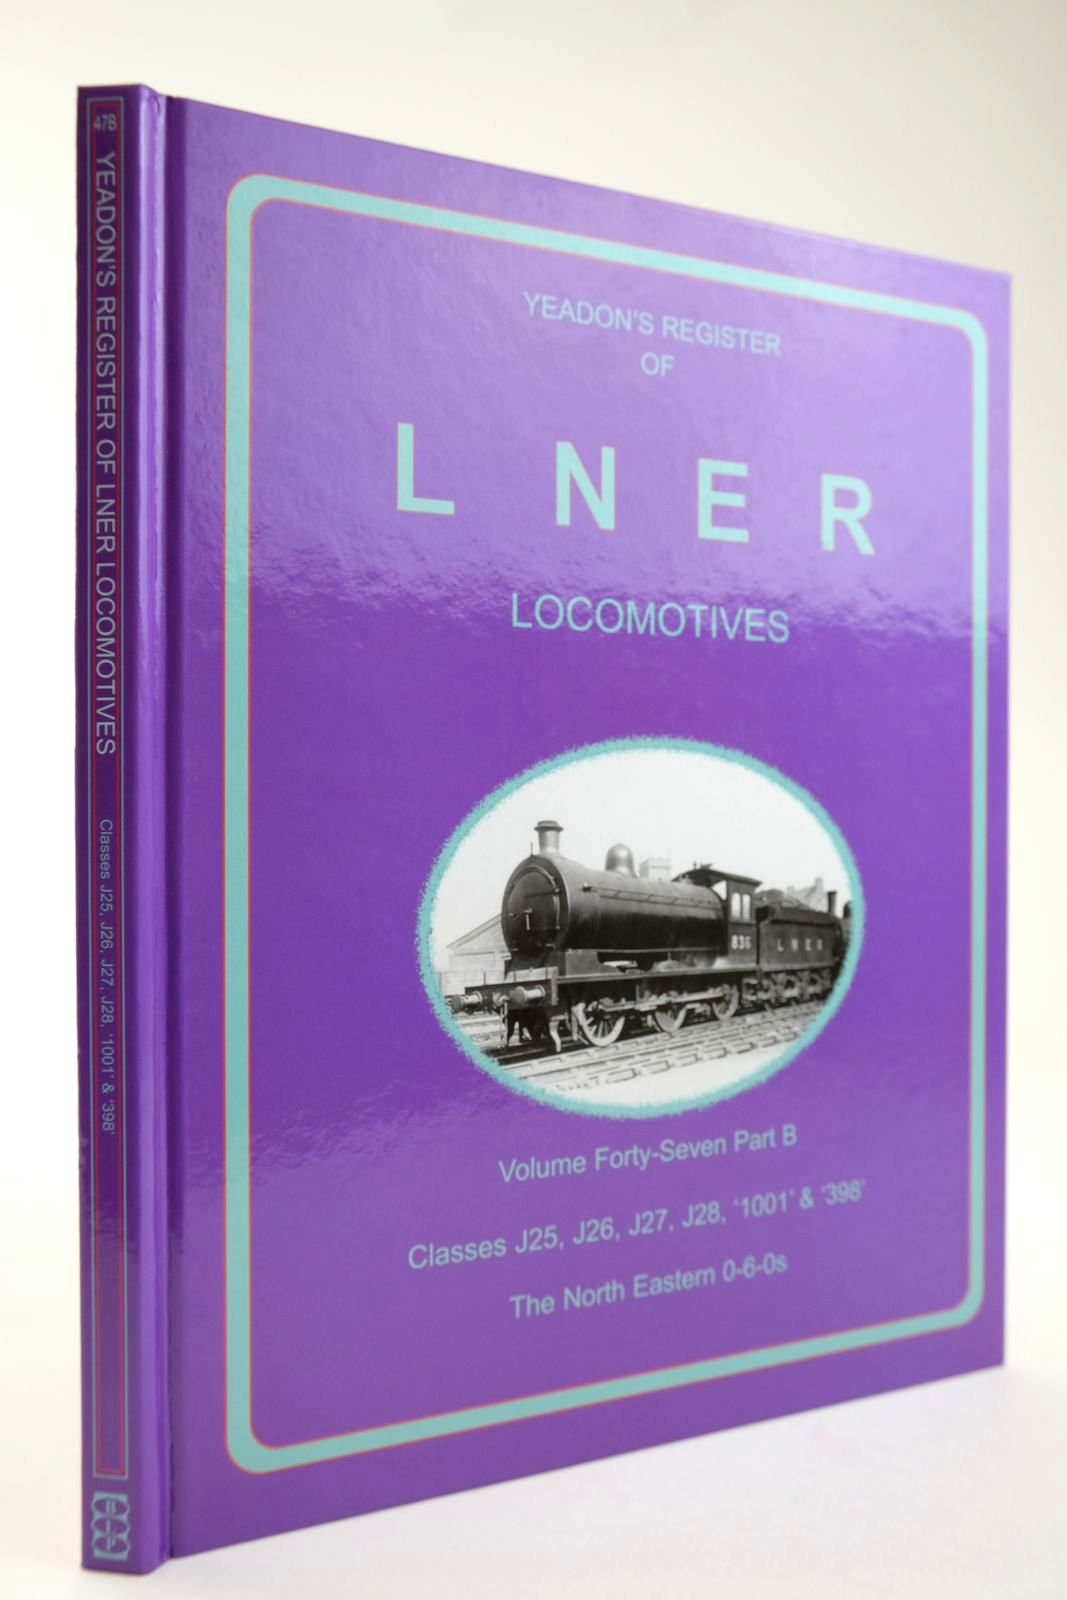 Photo of YEADON'S REGISTER OF LNER LOCOMOTIVES VOLUME FORTY SEVEN PART B written by Yeadon, W.B. published by Book Law Publications, Challenger Publications (STOCK CODE: 2133573)  for sale by Stella & Rose's Books